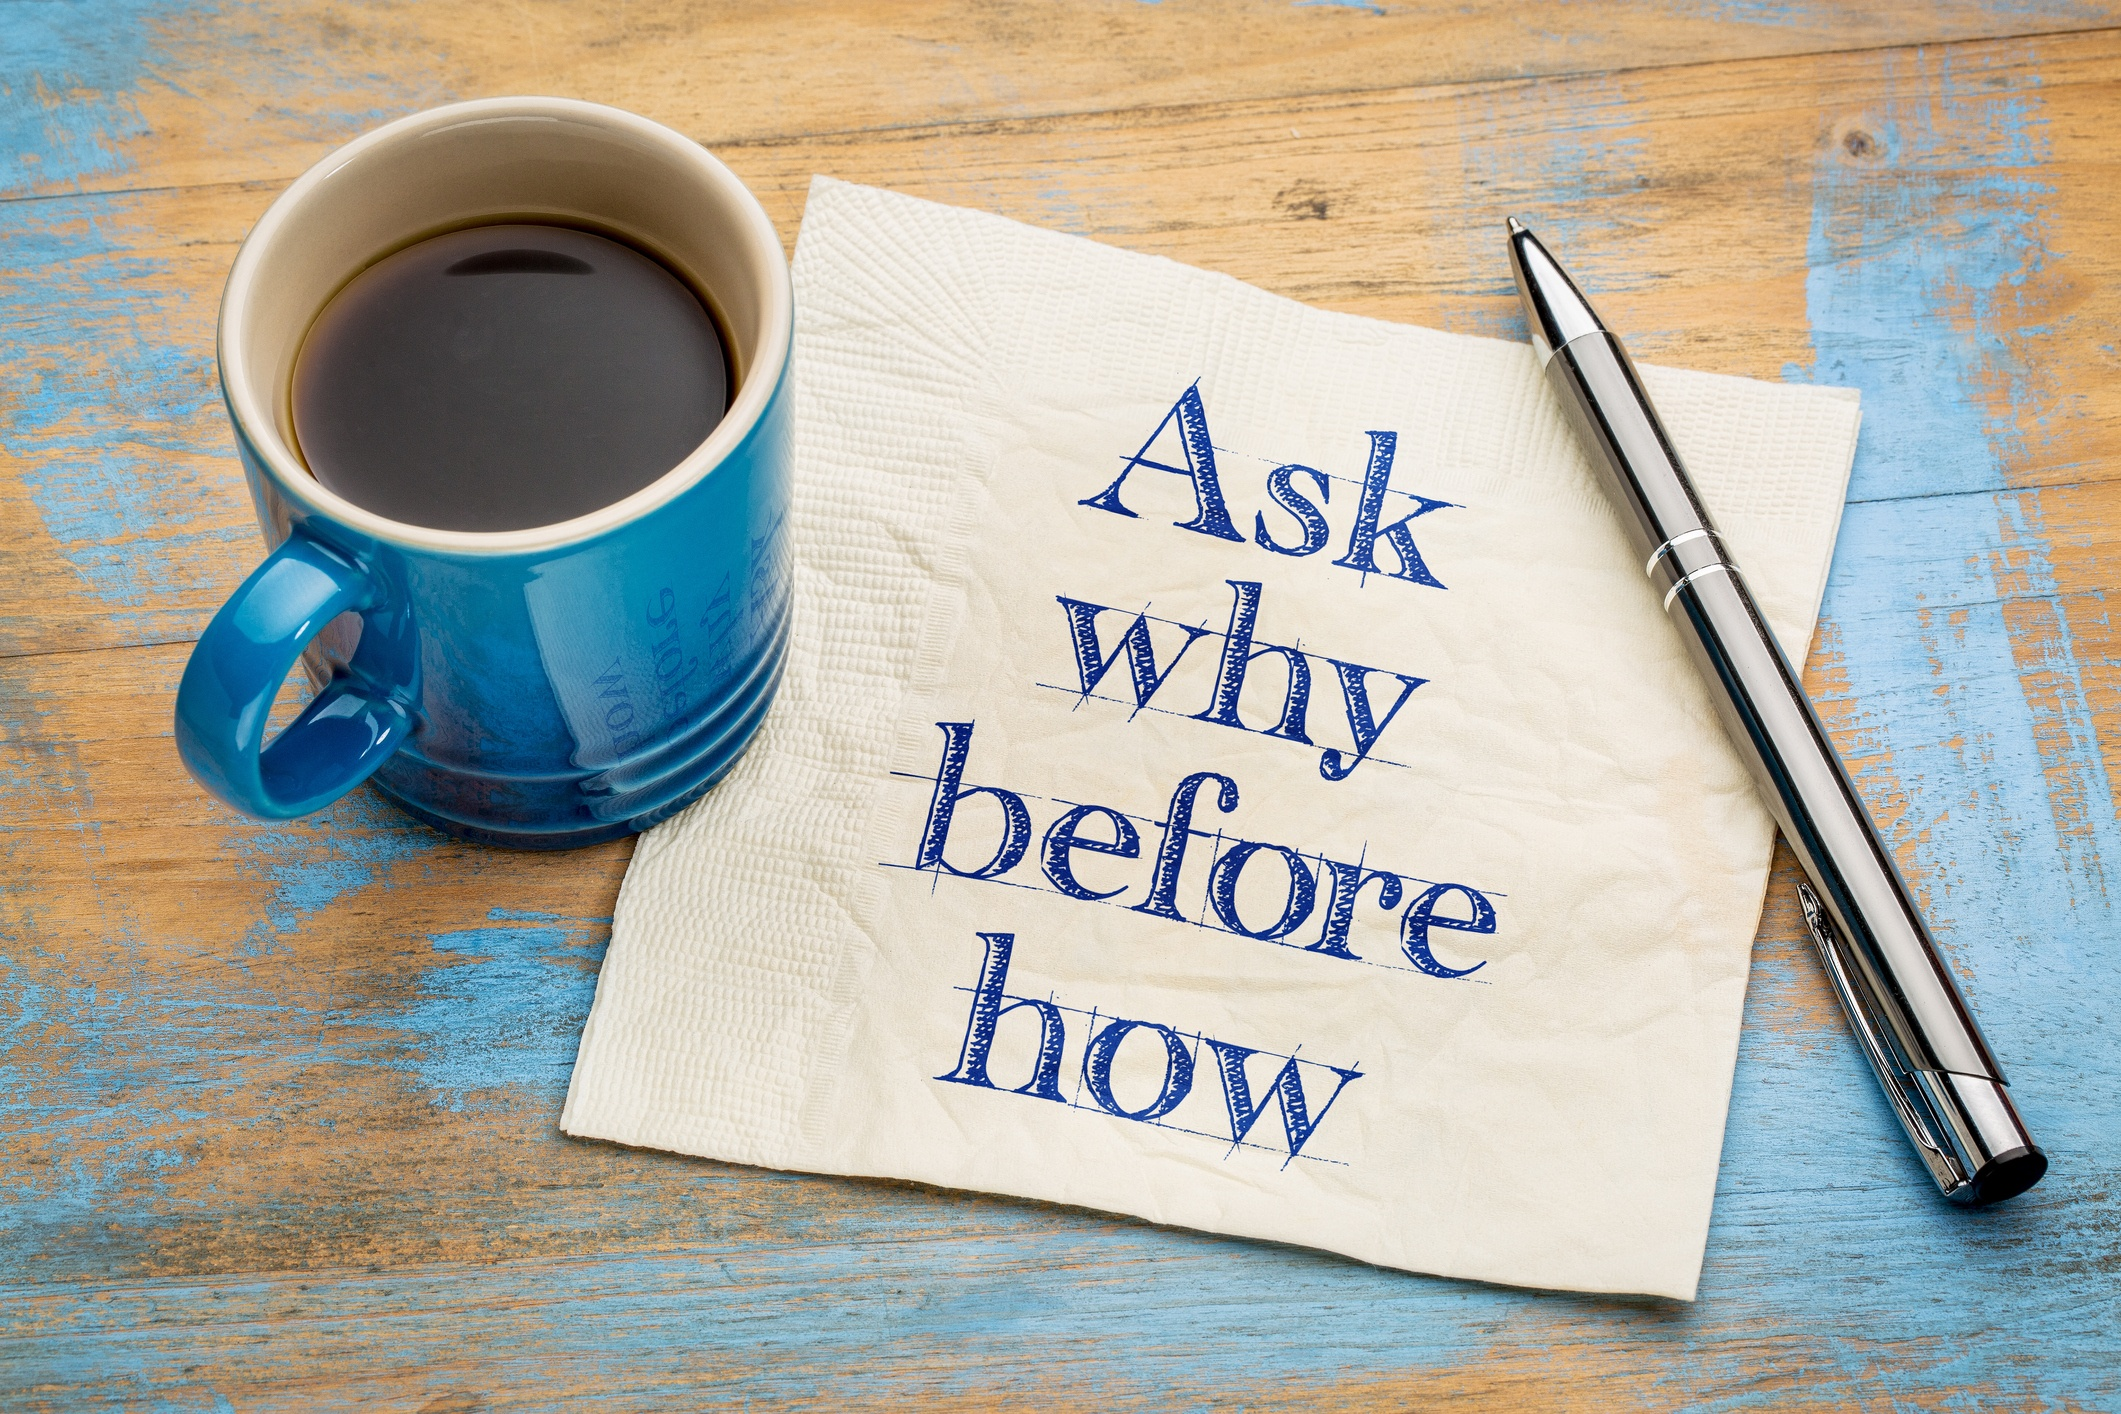 Ask-why-before-how-661815858_2125x1416 (1)